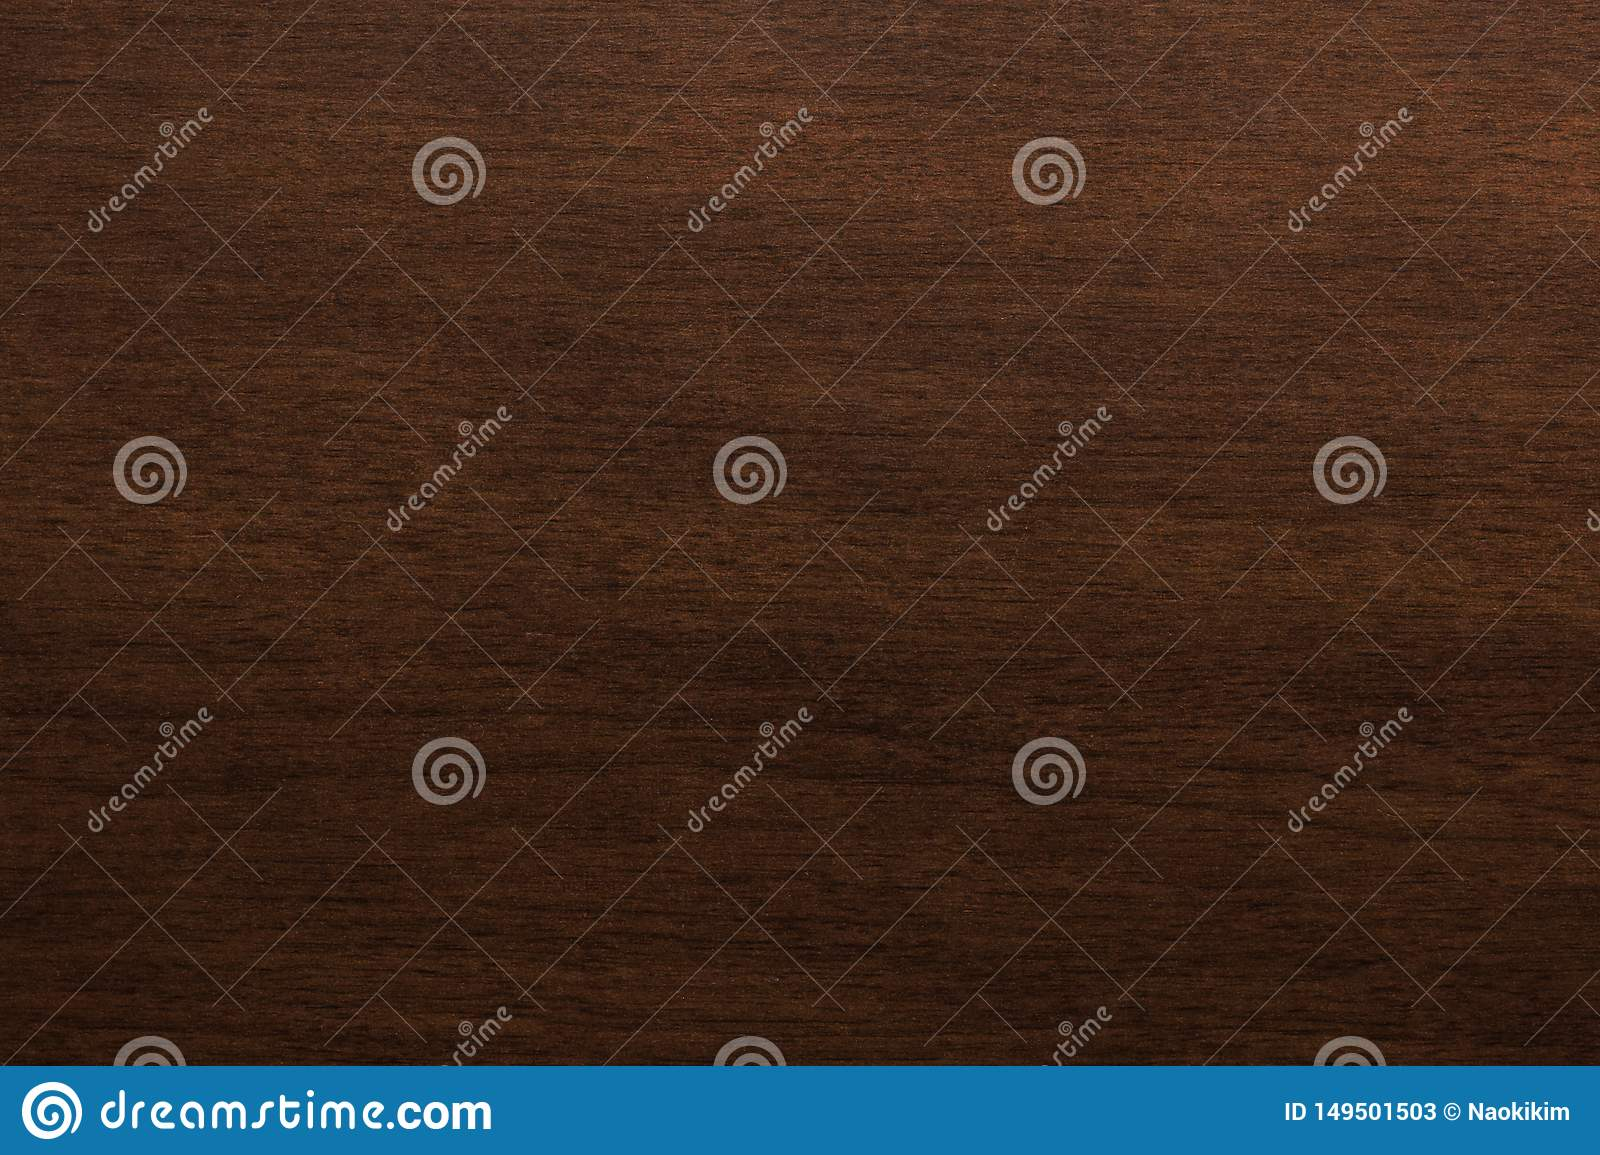 Natural brown wood plank abstract or vintage board texture background